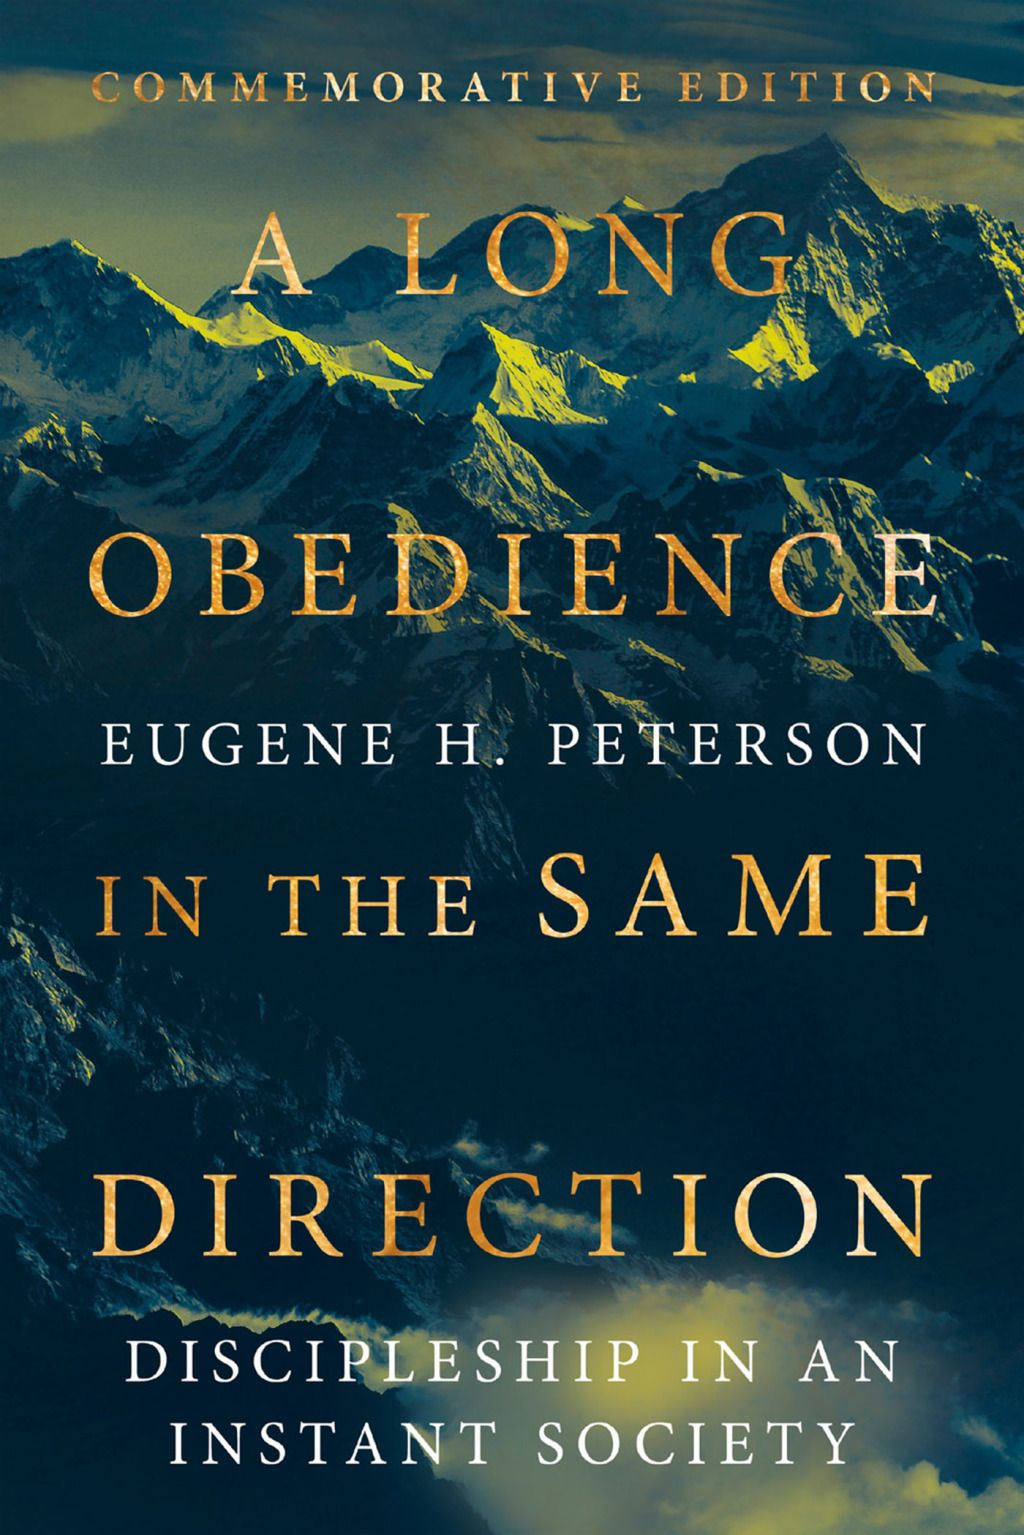 A long obedience in the same direction ebook